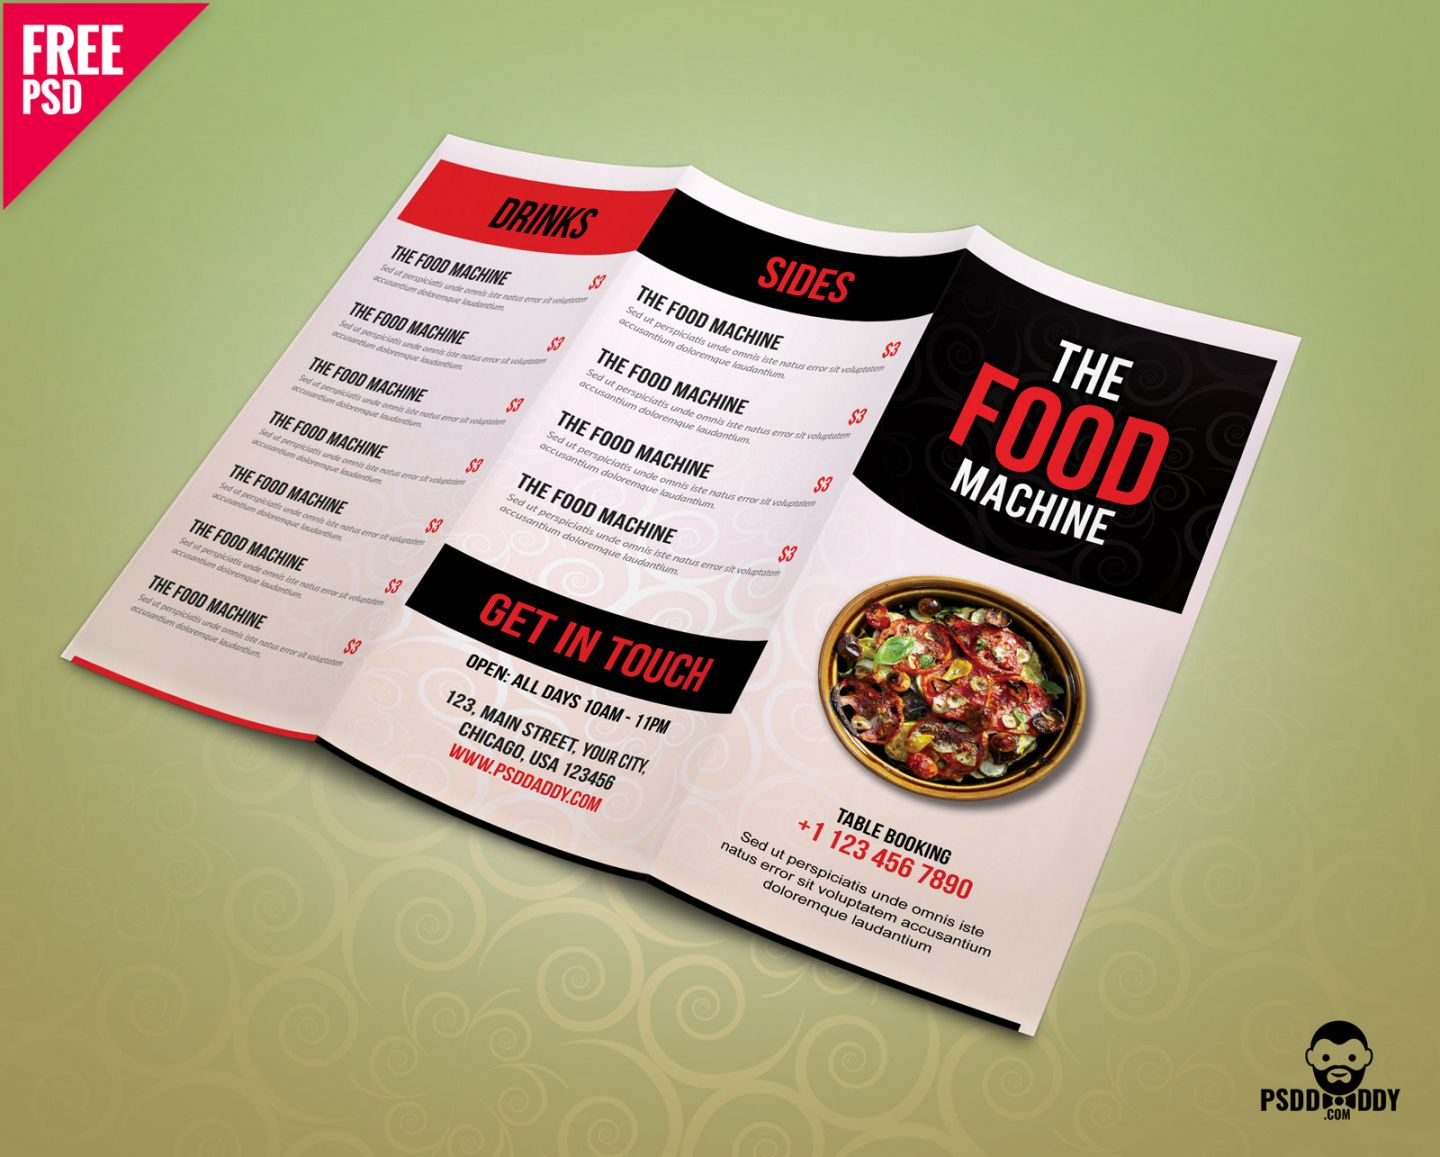 free 40 restaurant  food menu design psd templates  decolore modern restaurant food menu flyer template pdf